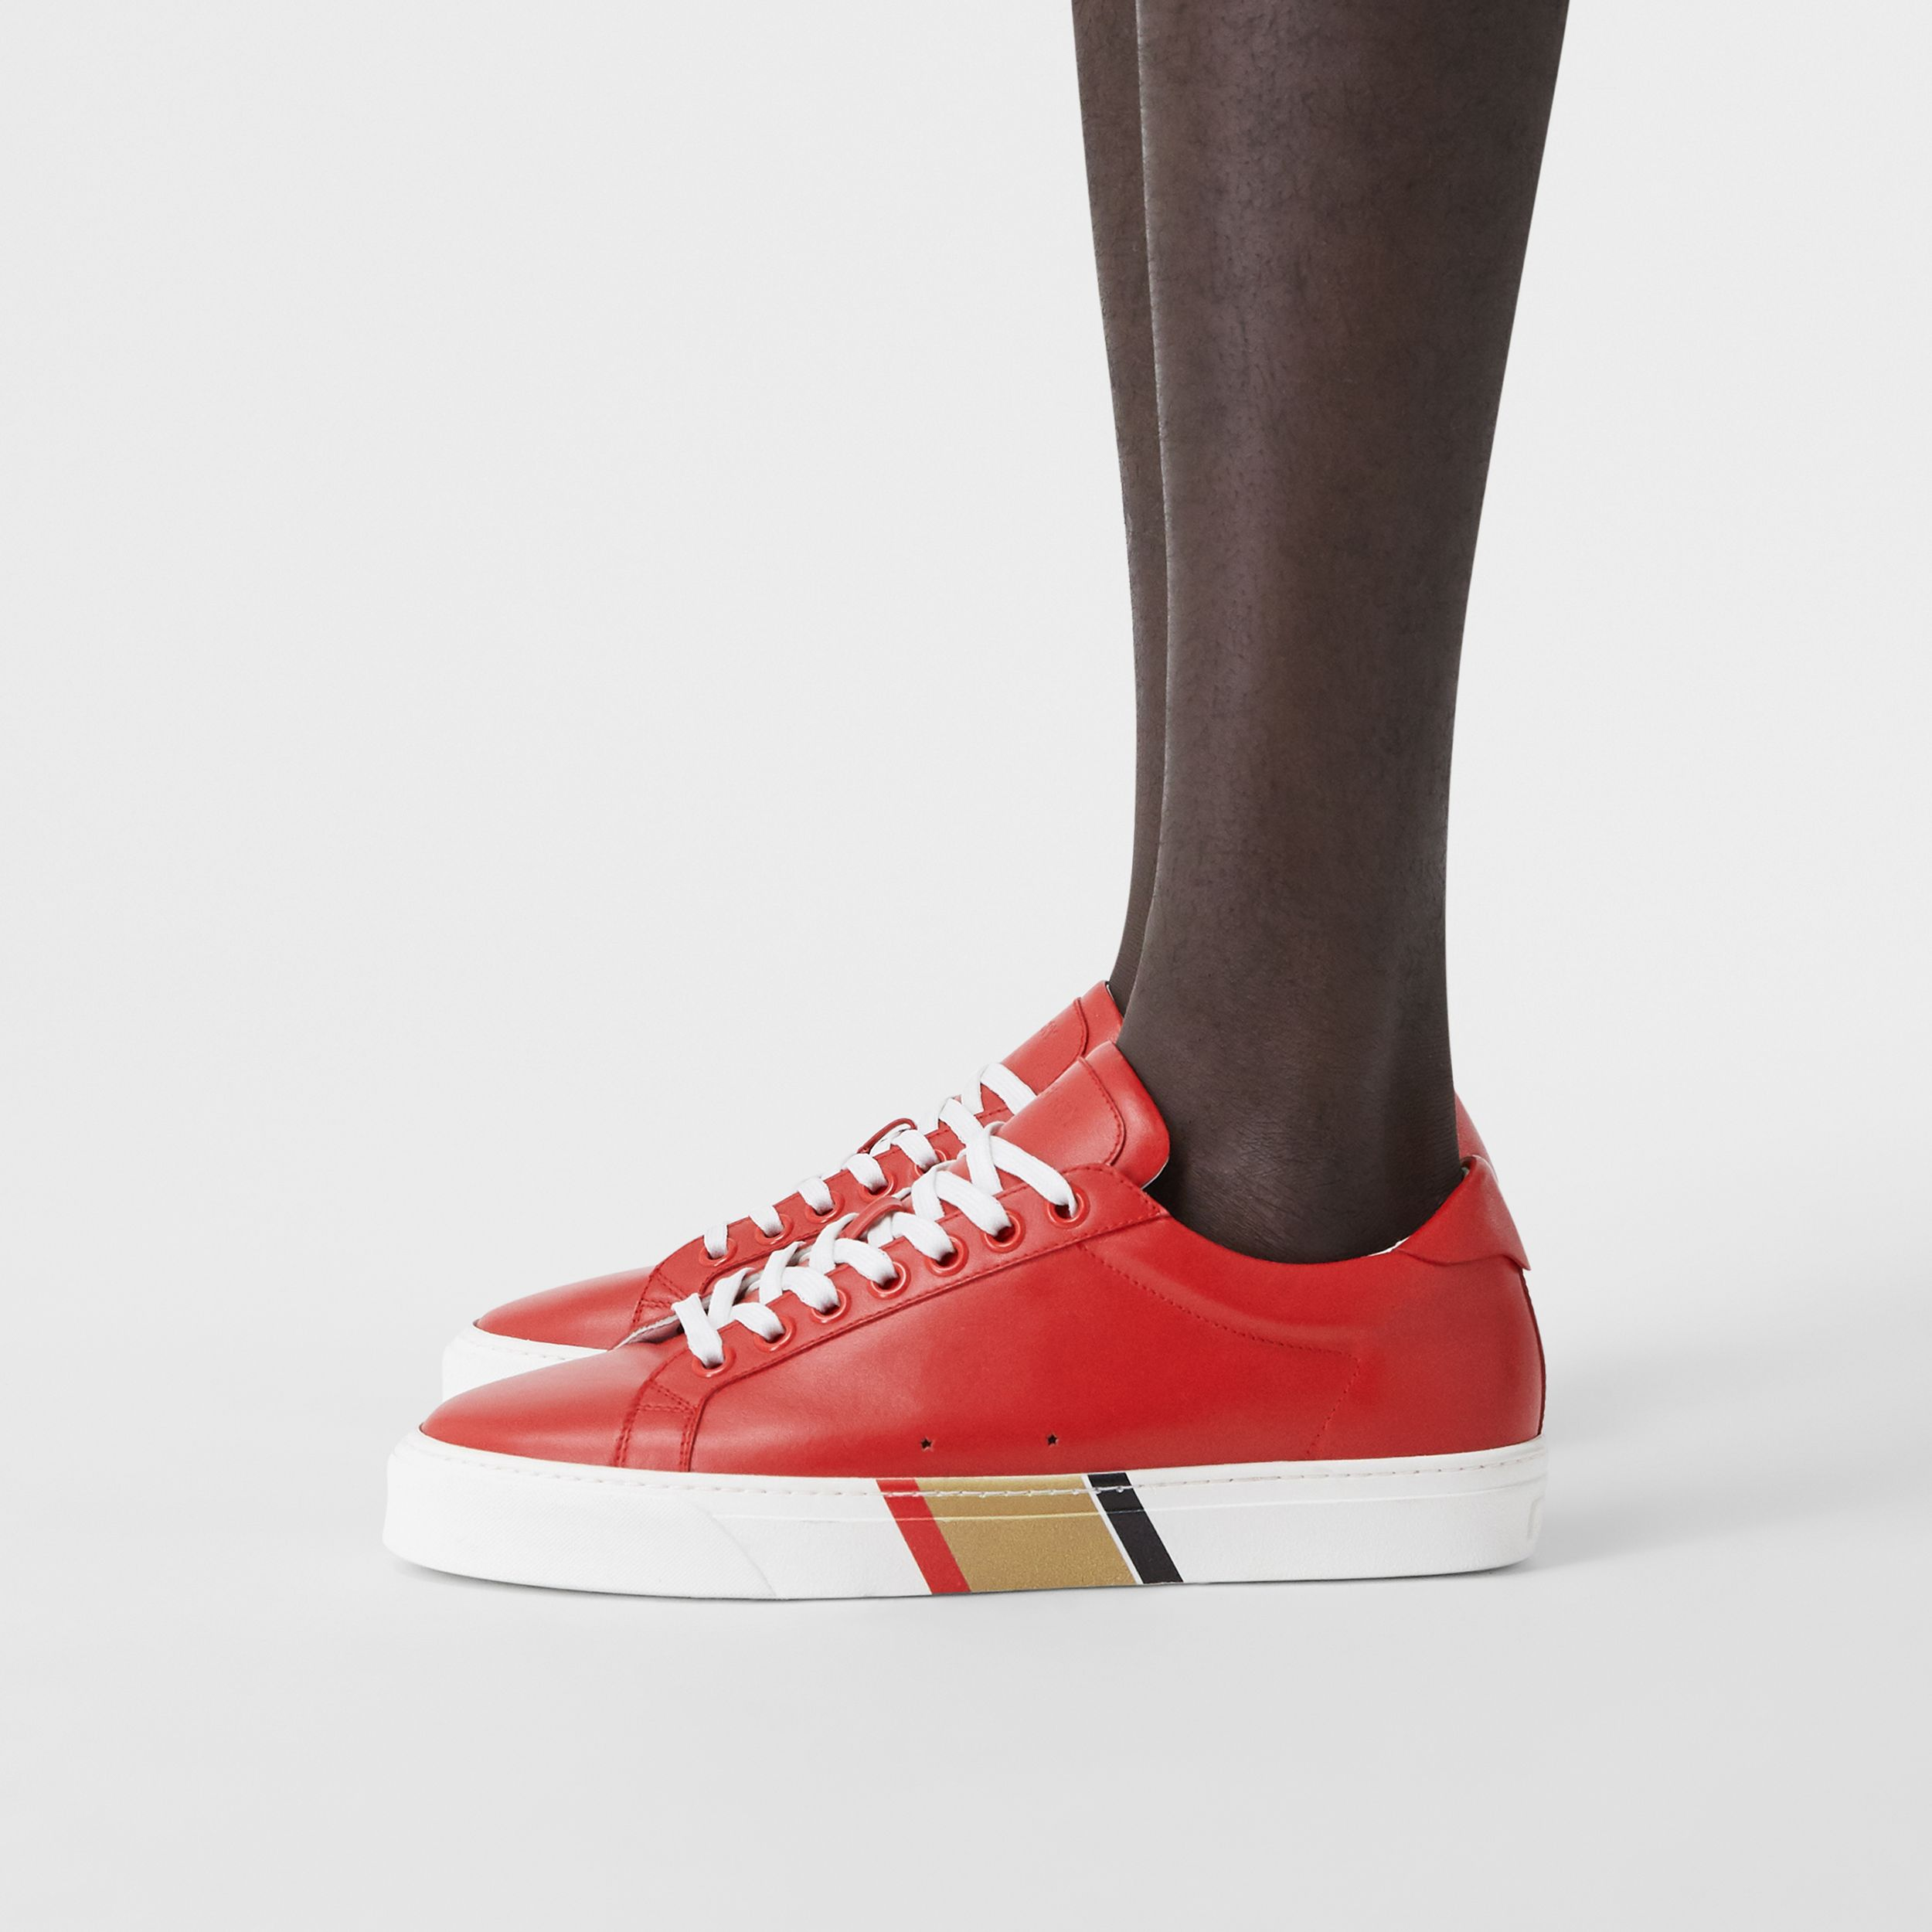 Bio-based Sole Leather Sneakers in Bright Red - Men | Burberry United States - 3